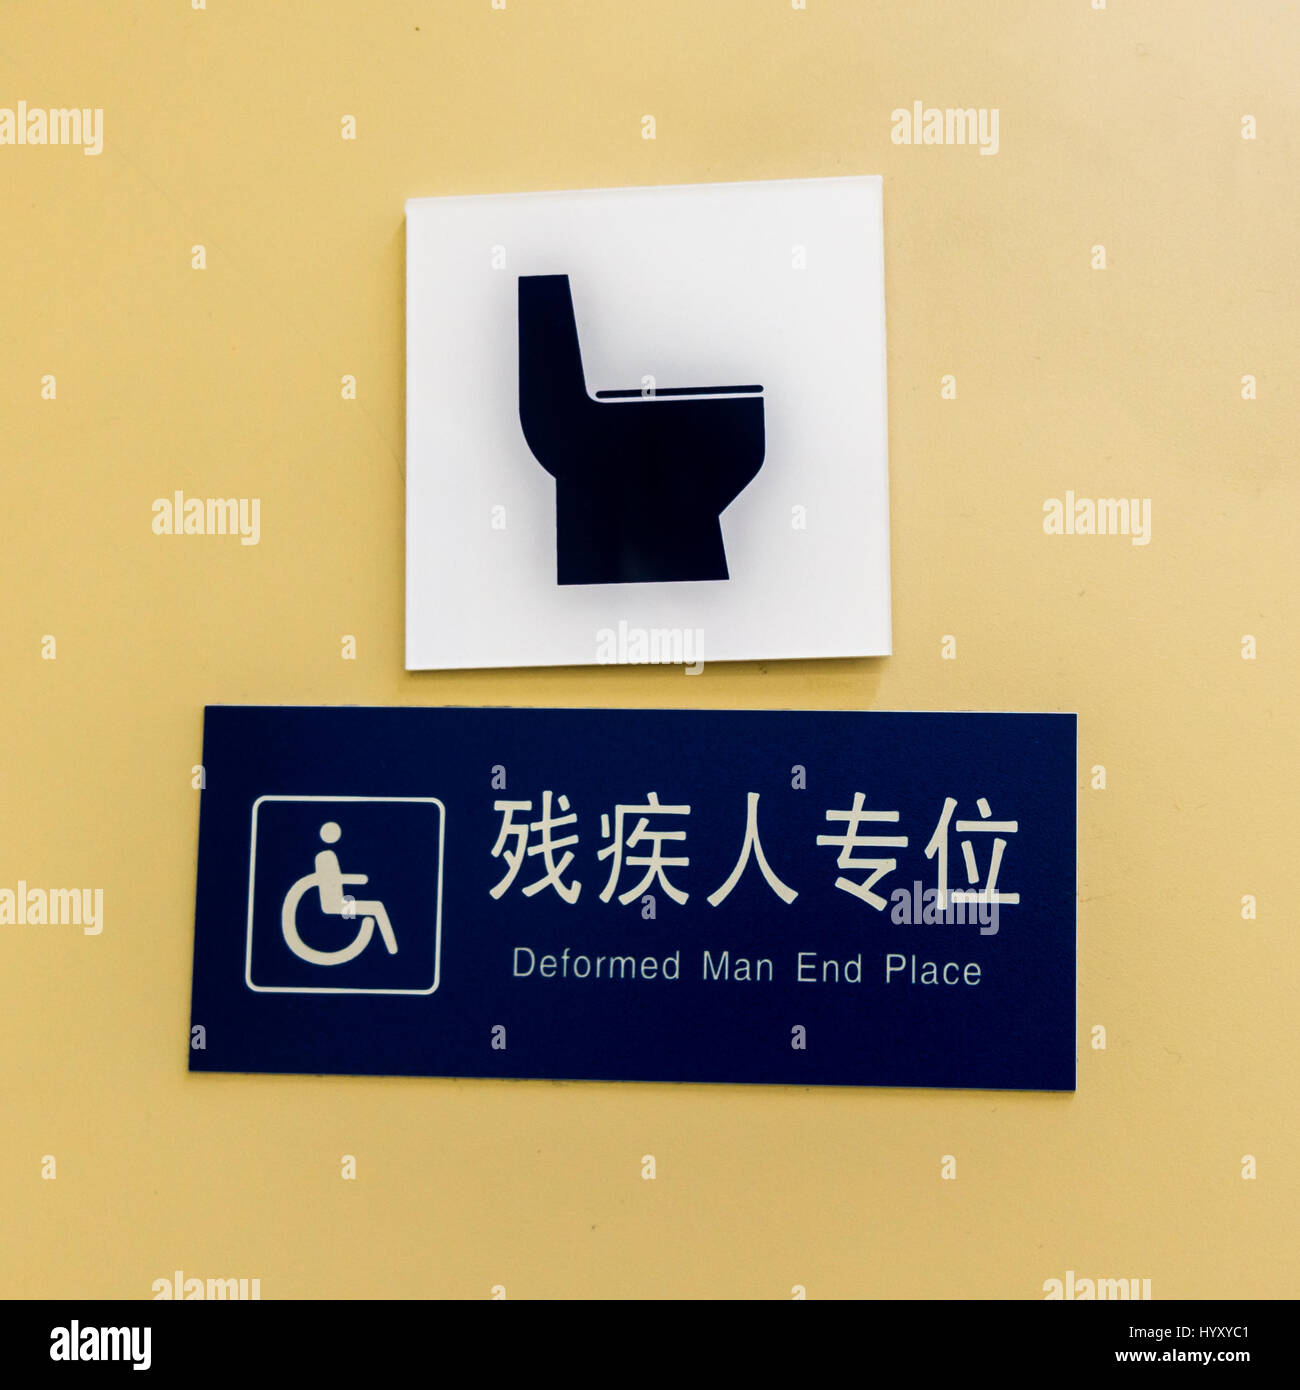 Chinese disabled toilet sign poorly translated into English  Xi an  China. Chinese disabled toilet sign poorly translated into English  Xi an